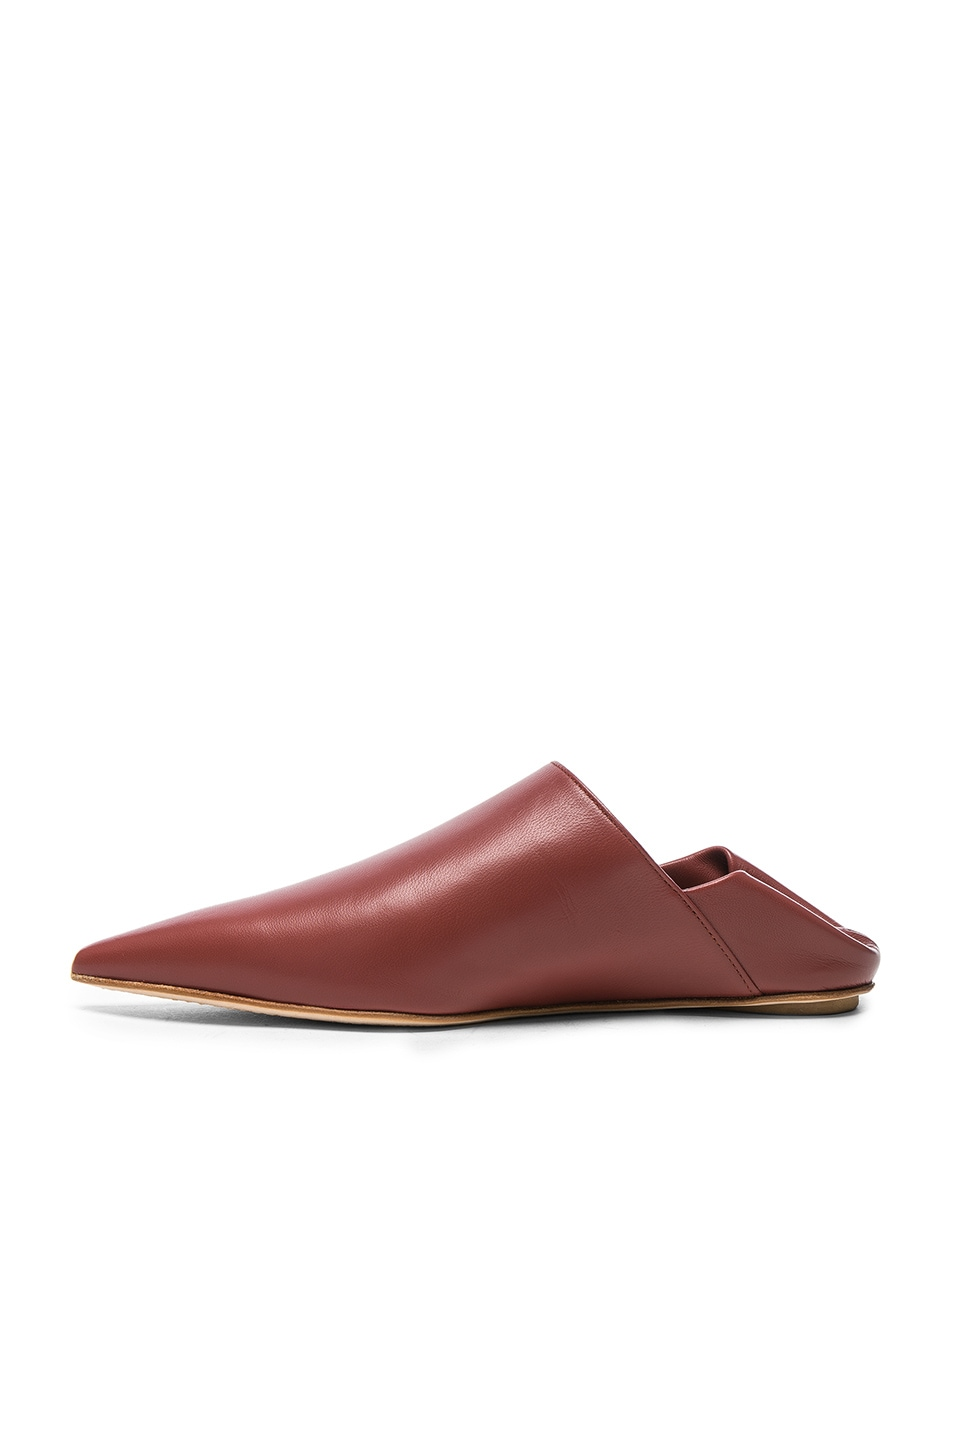 Image 5 of Marni Leather Sabot Mules in Saddle Brown